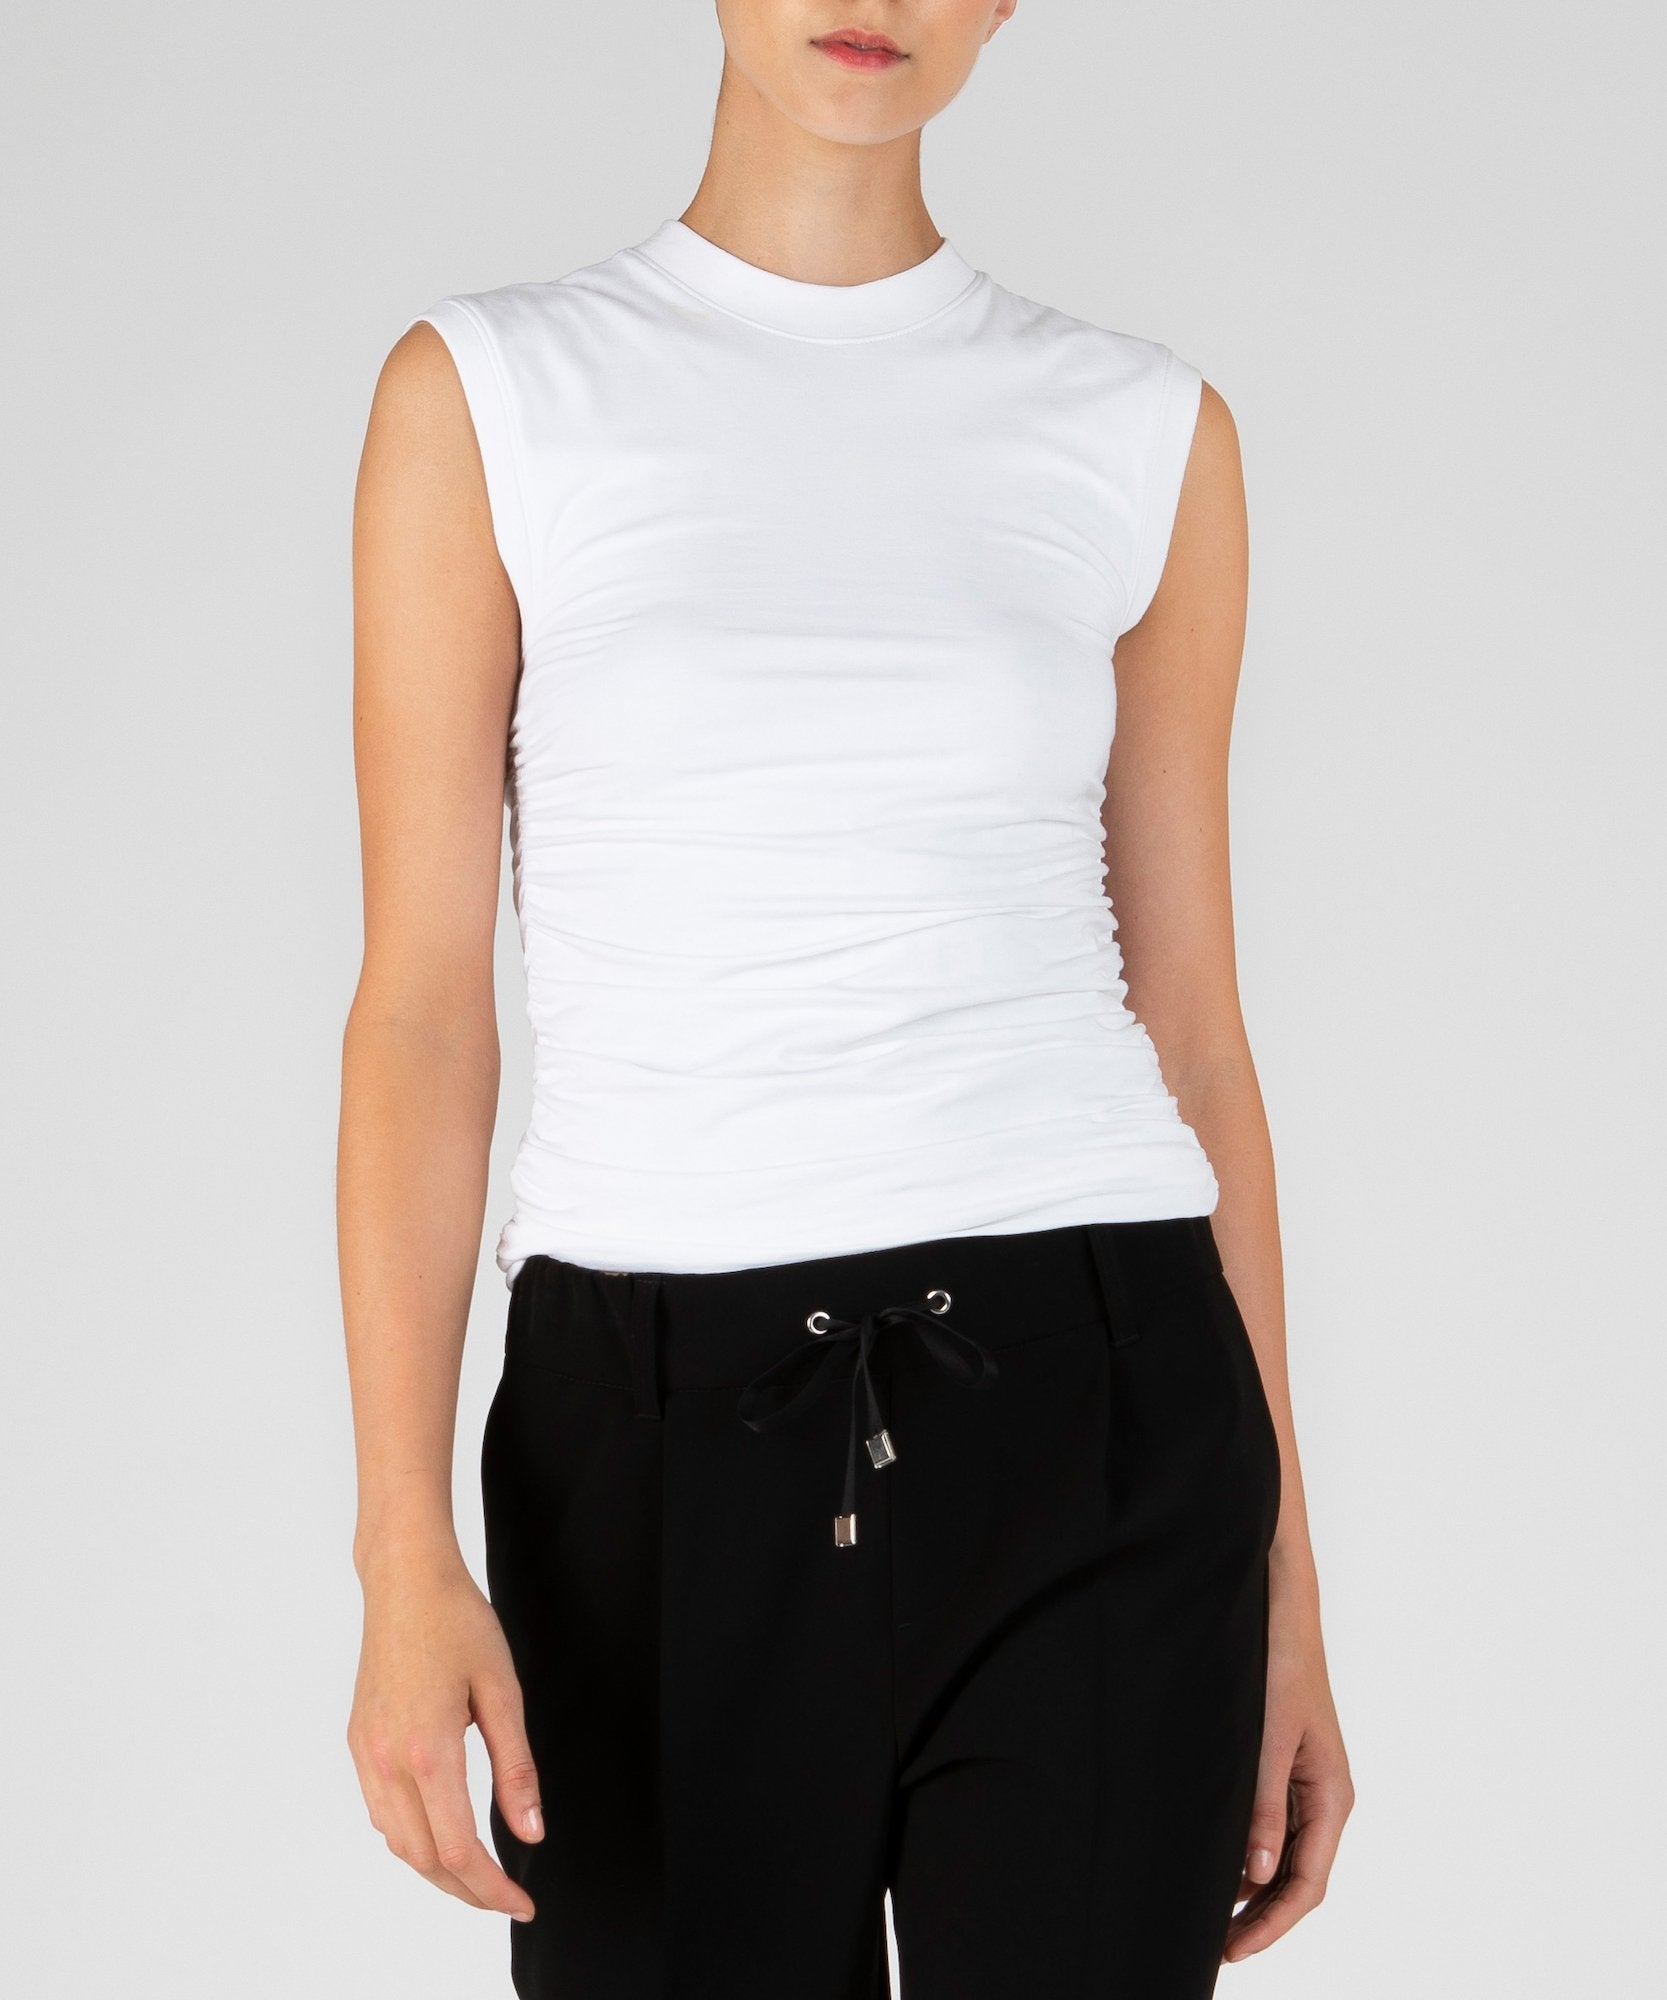 White Pima Cotton Ruched Sleeveless Top - Women's Cotton Top by ATM Anthony Thomas Melillo